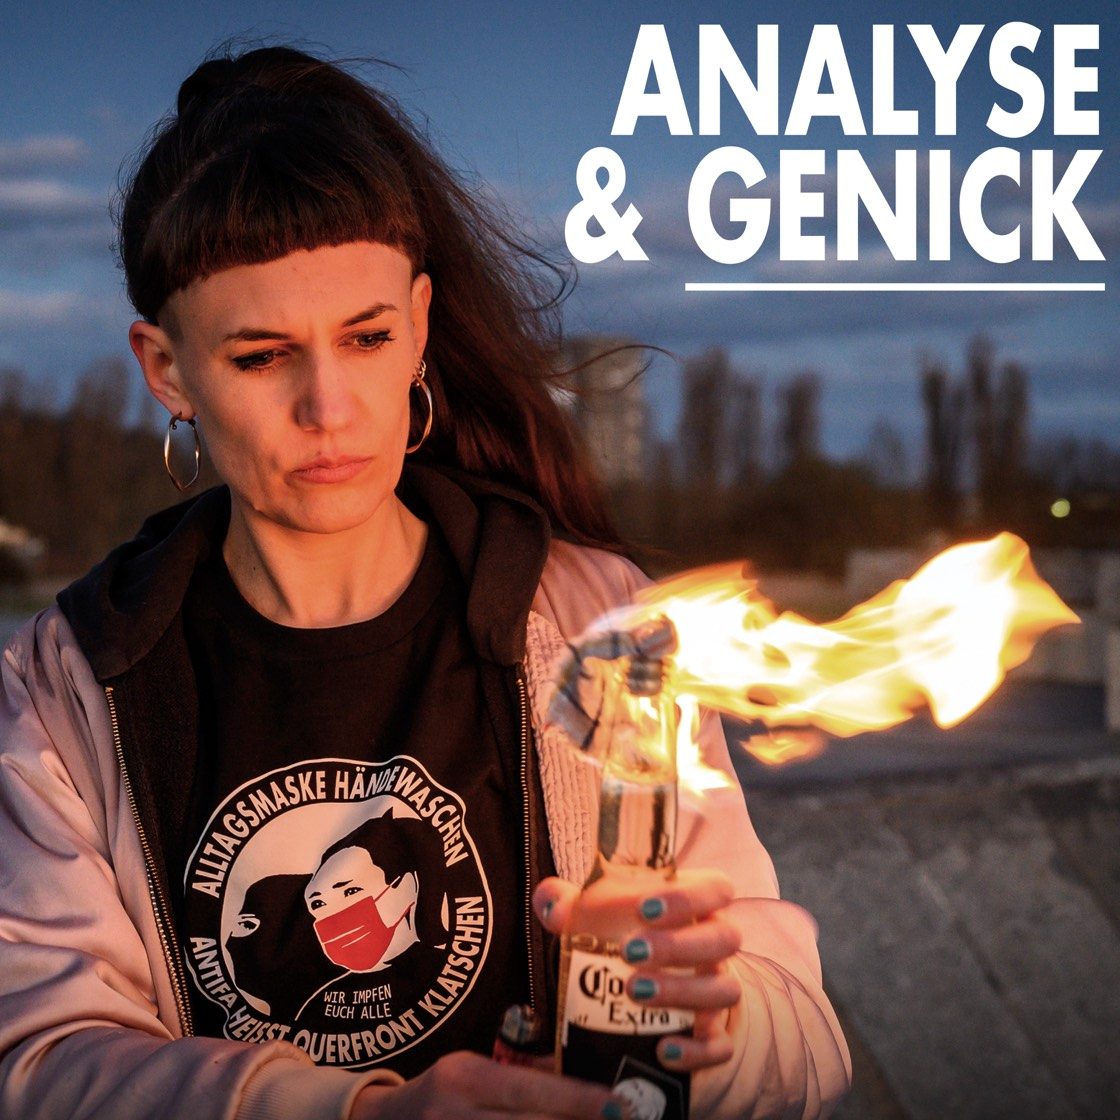 Upcoming: Babsi Tollwut - Analyse & Genick